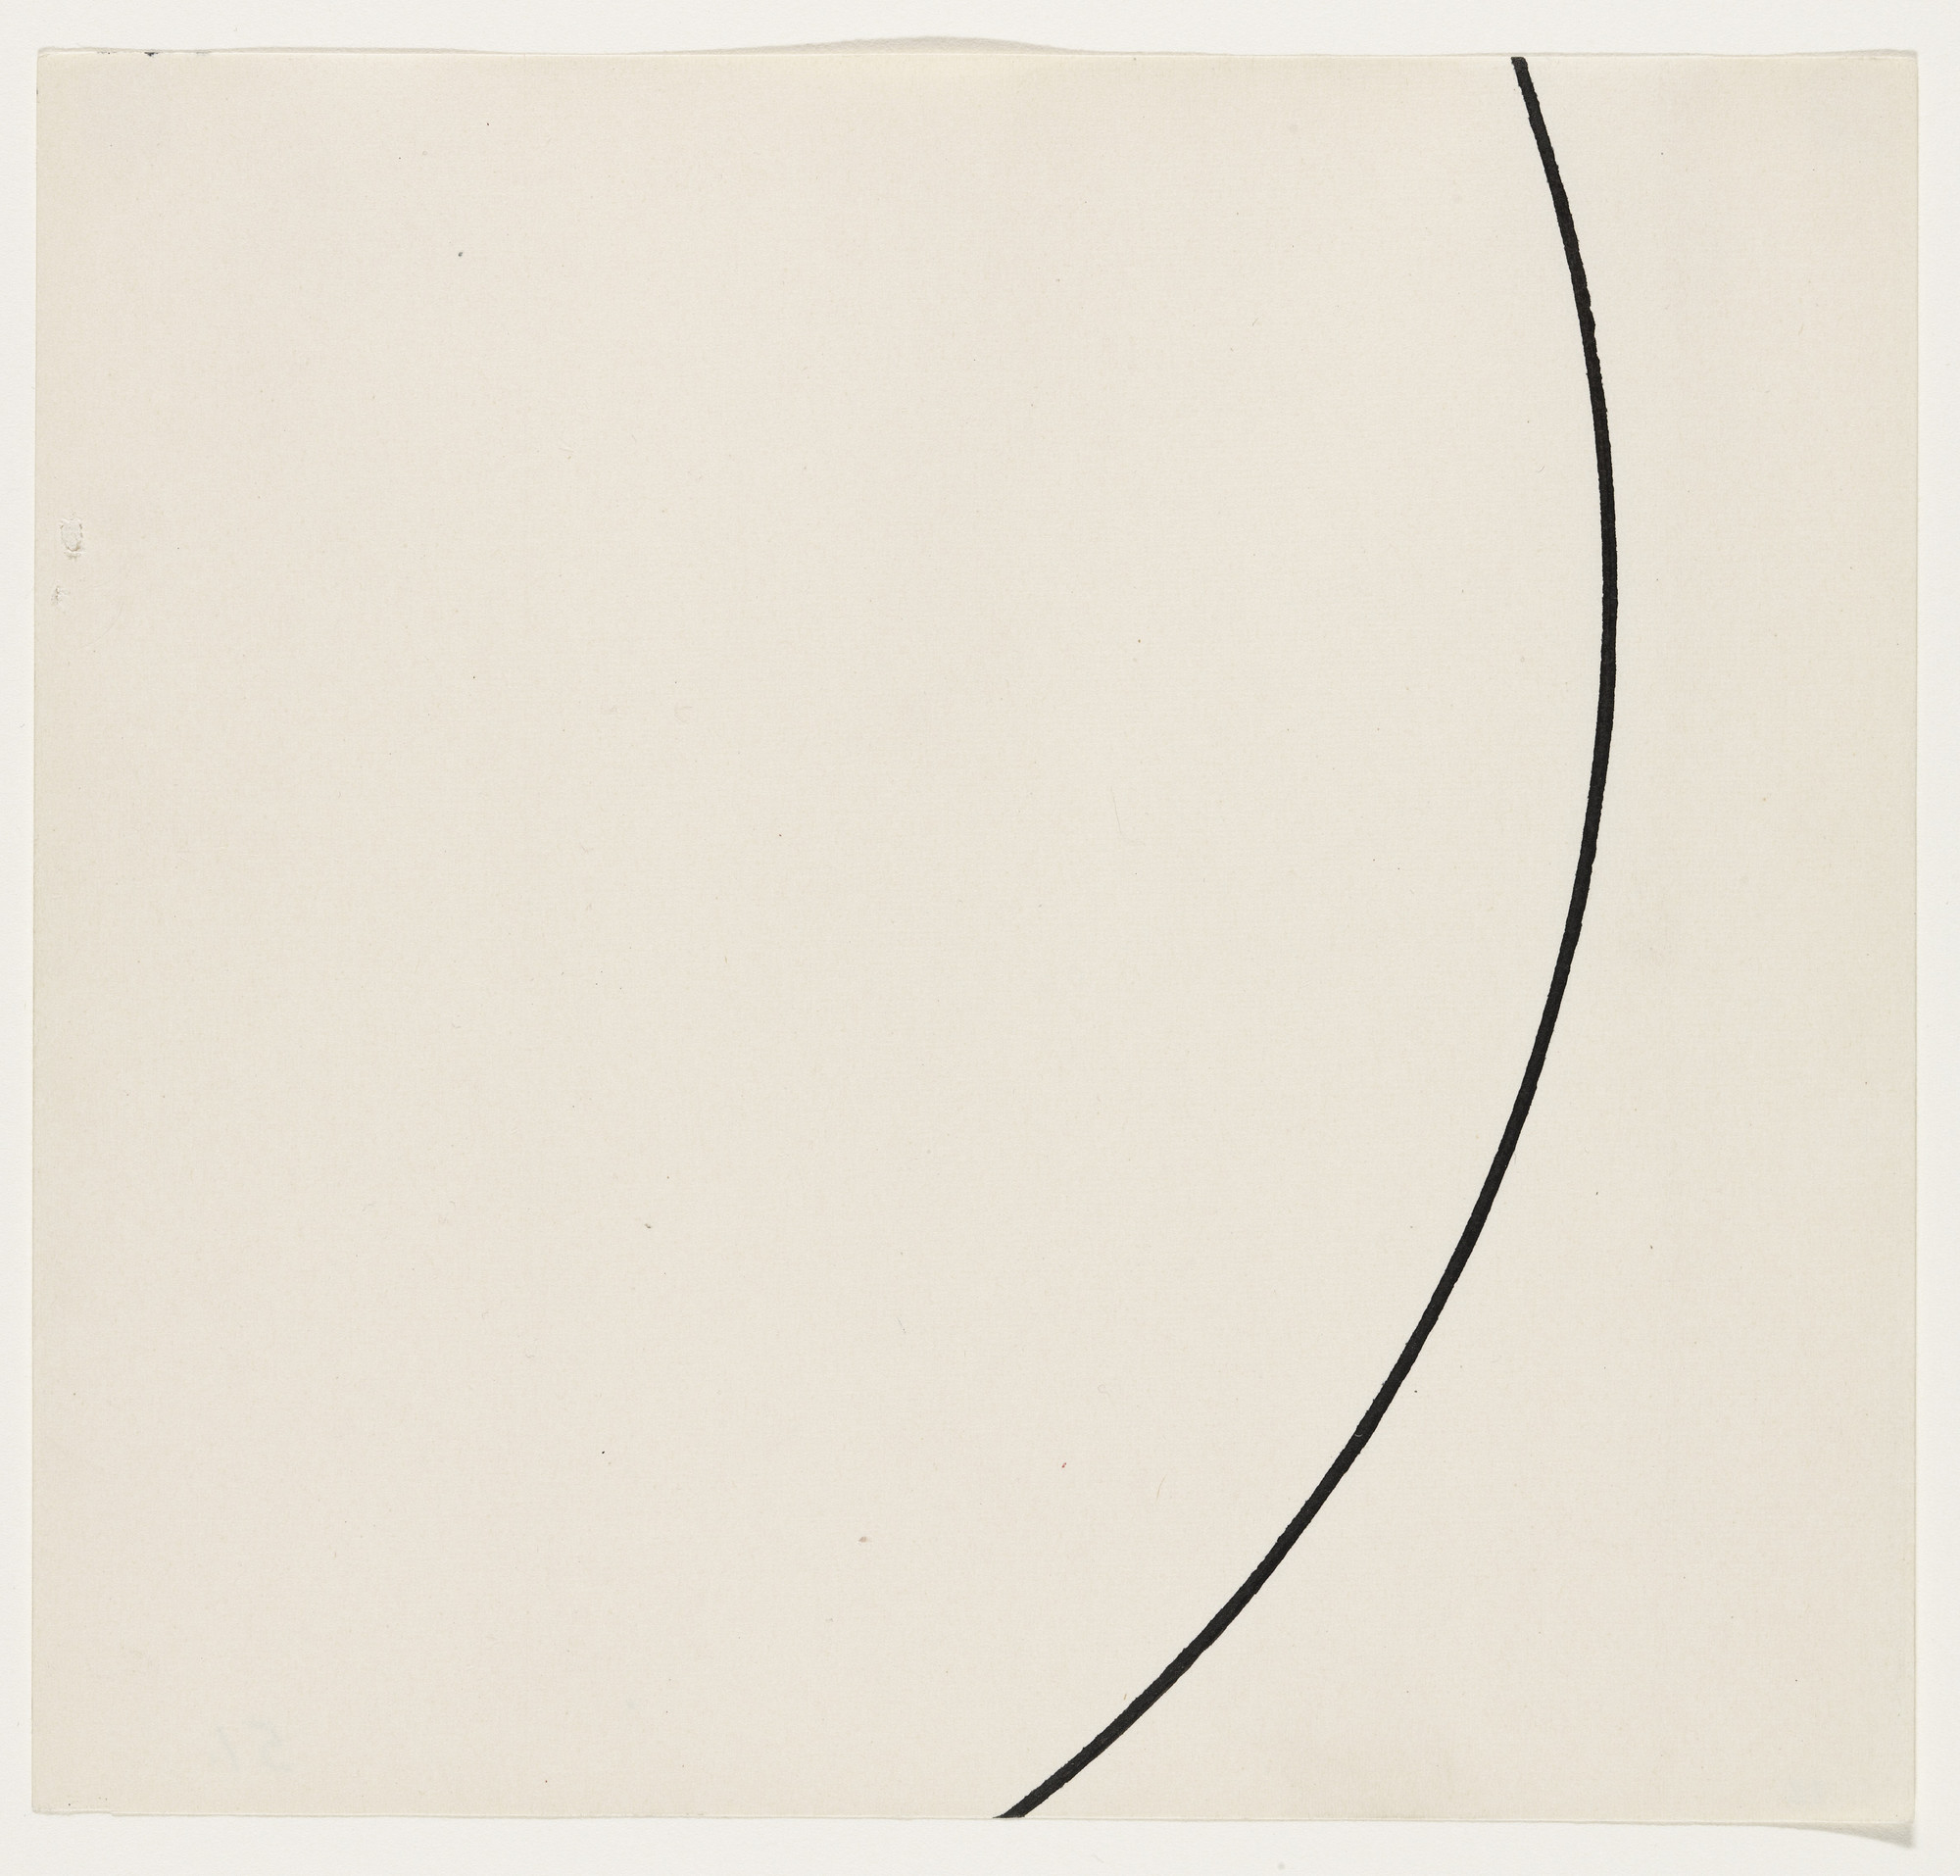 Ellsworth Kelly. Curve. 1951